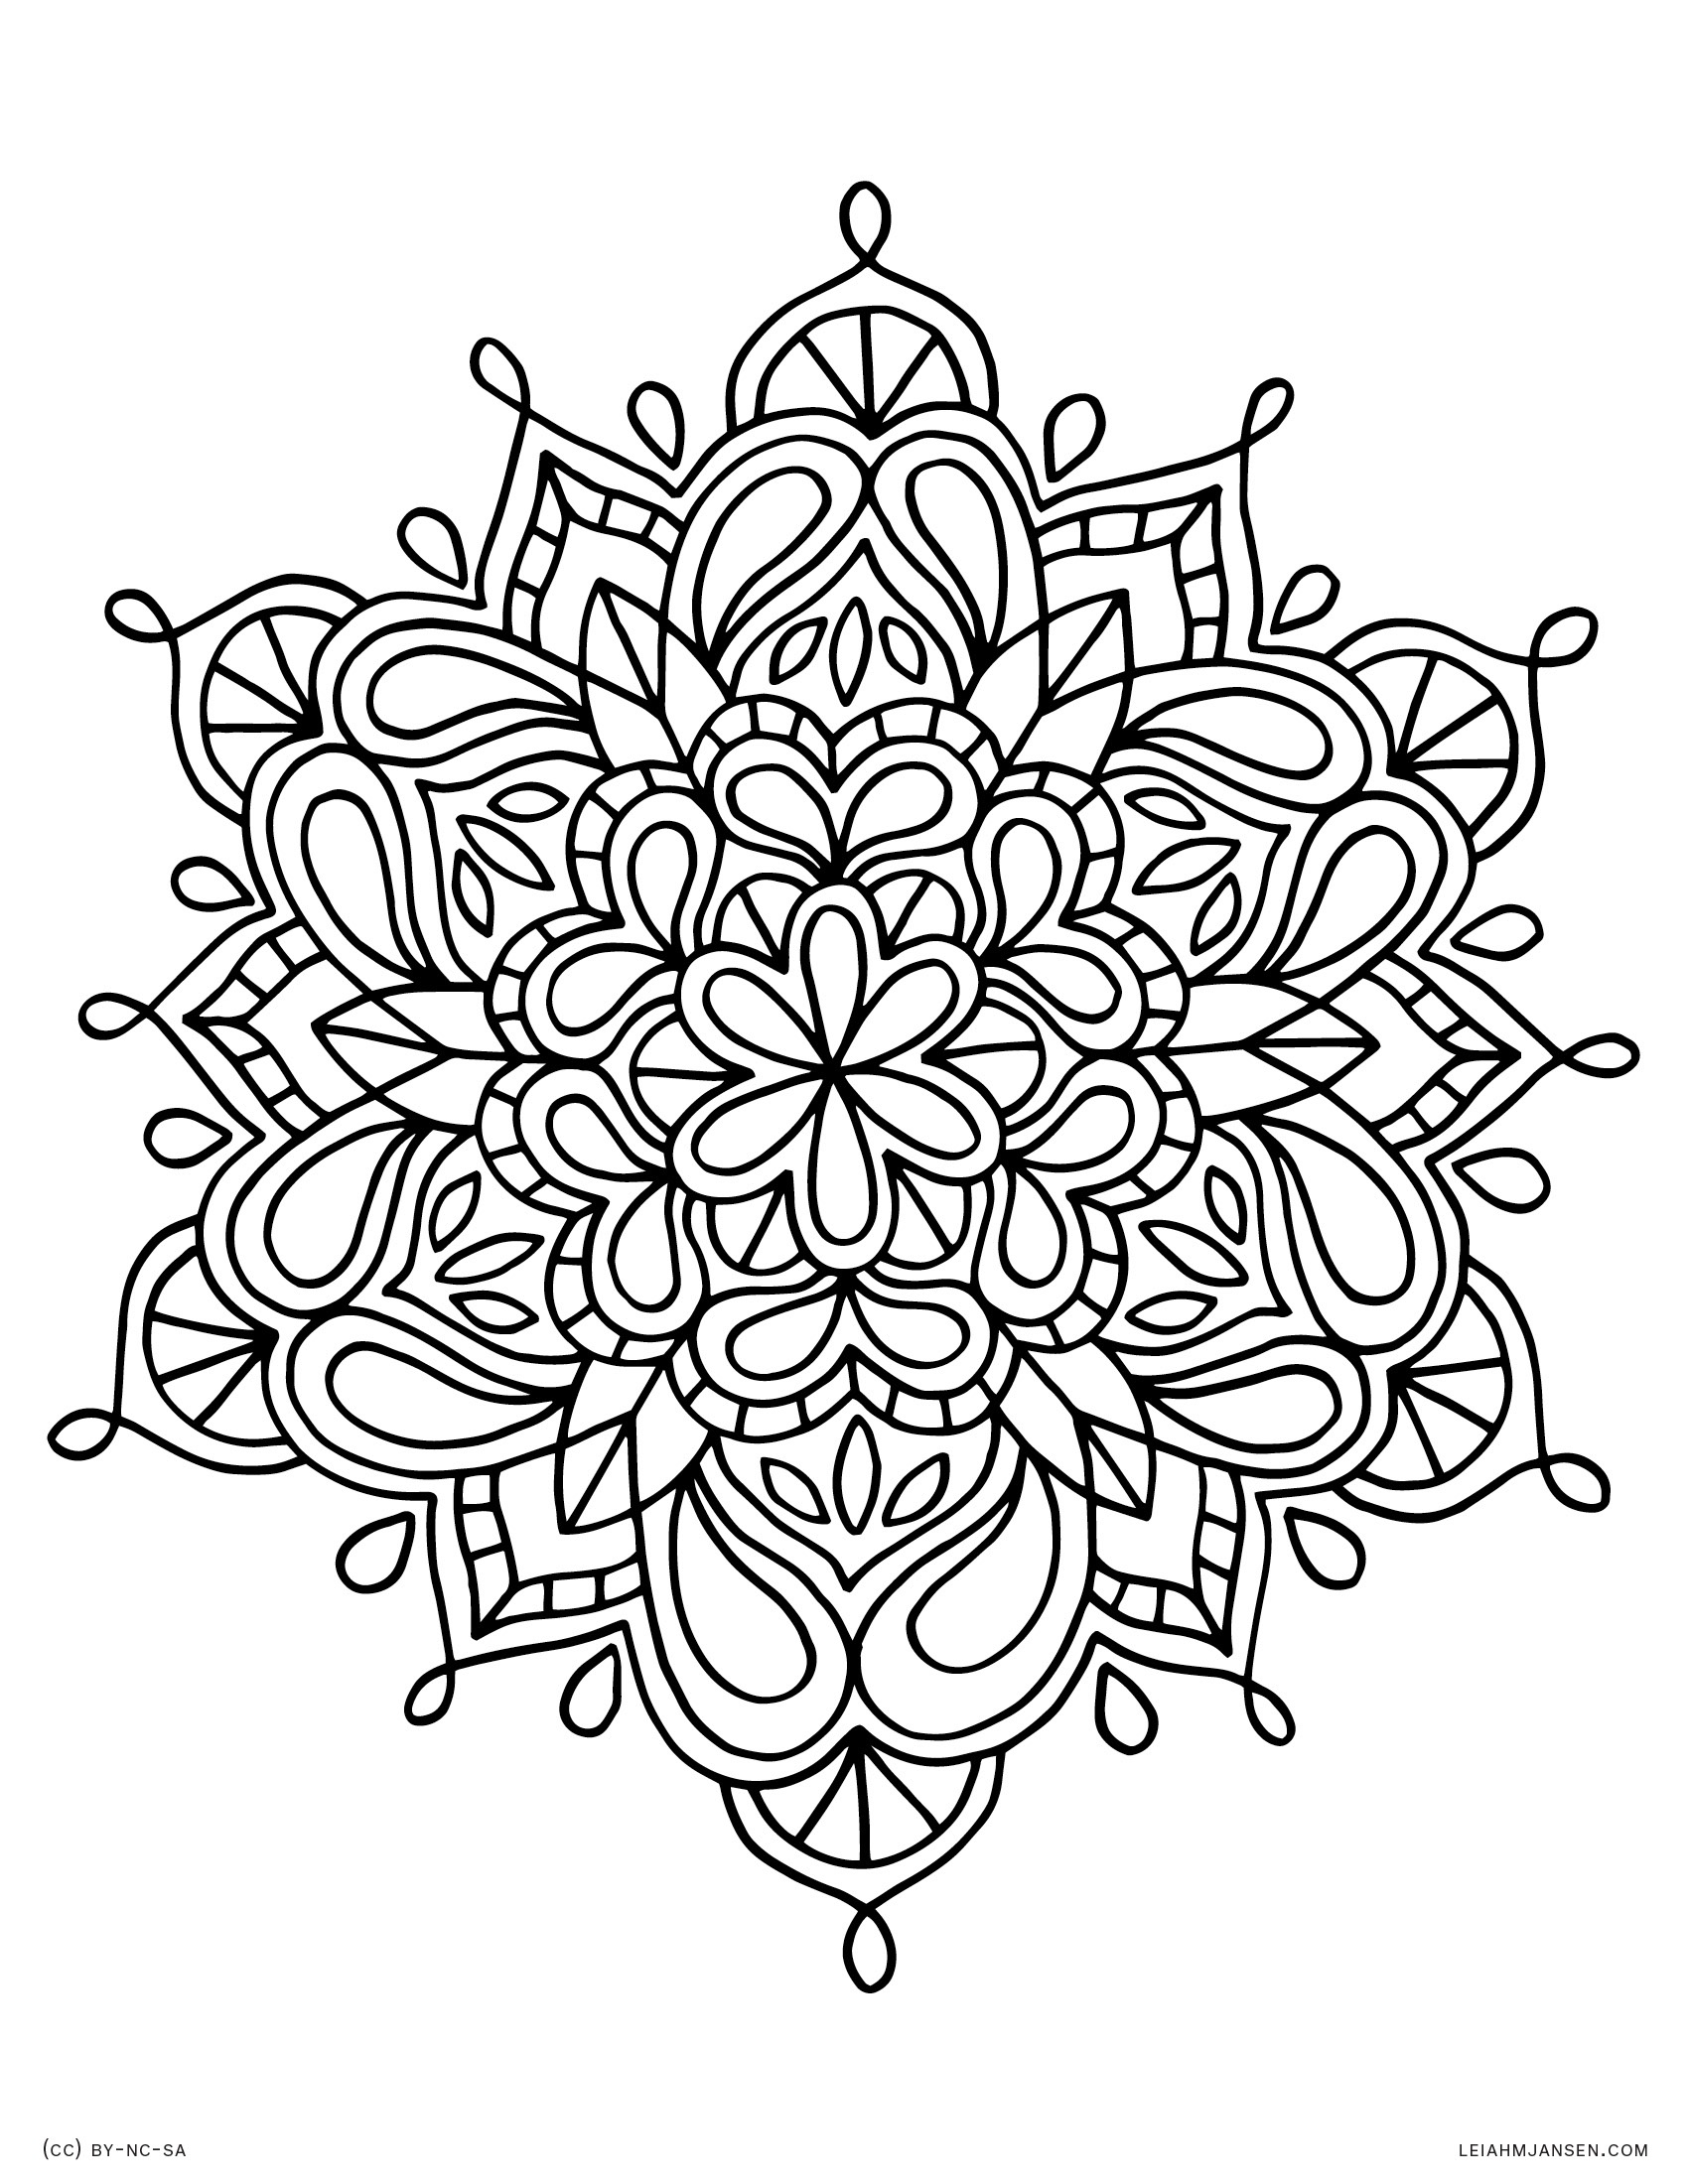 Coloring Pages - Www Free Printable Coloring Pages